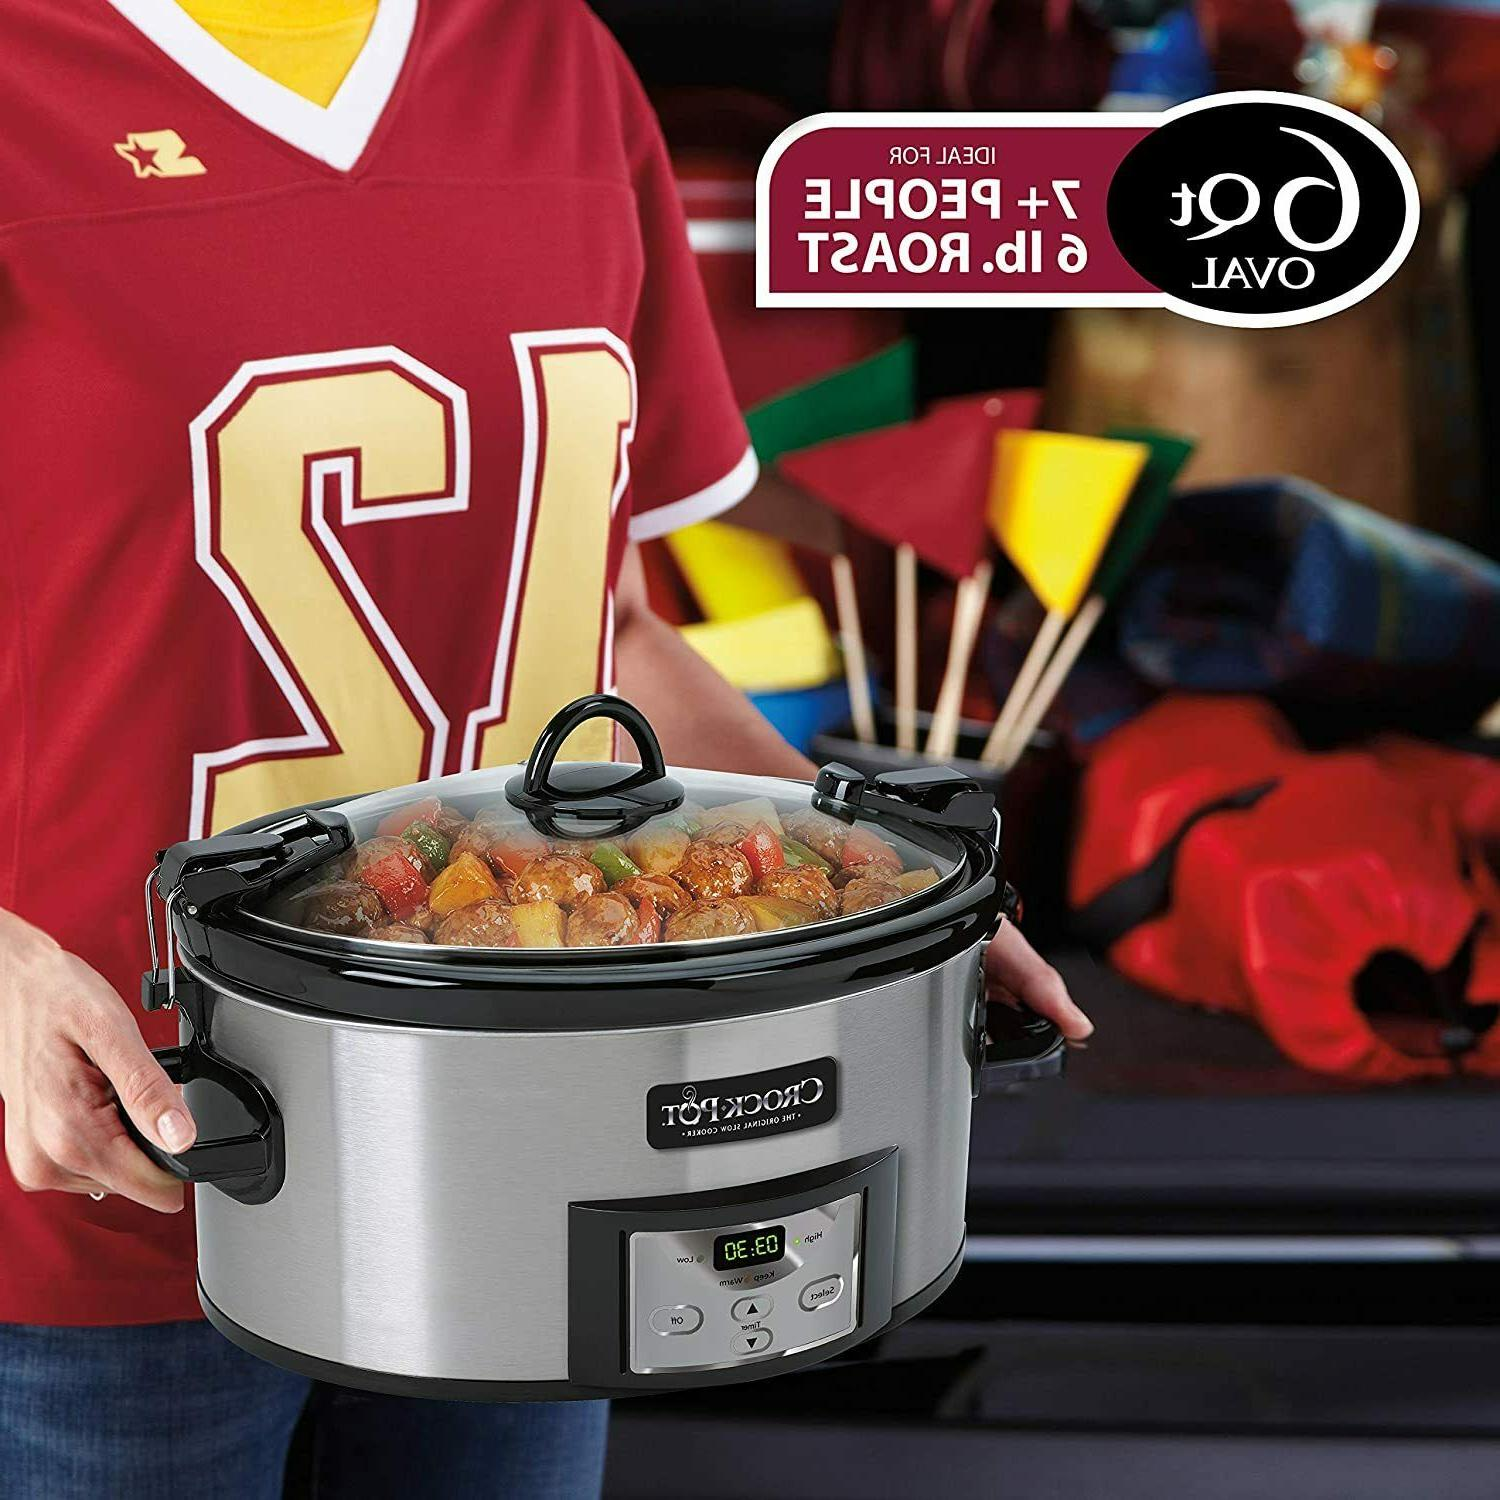 SCCPVL610-S-A Carry Cooker with Digital Timer